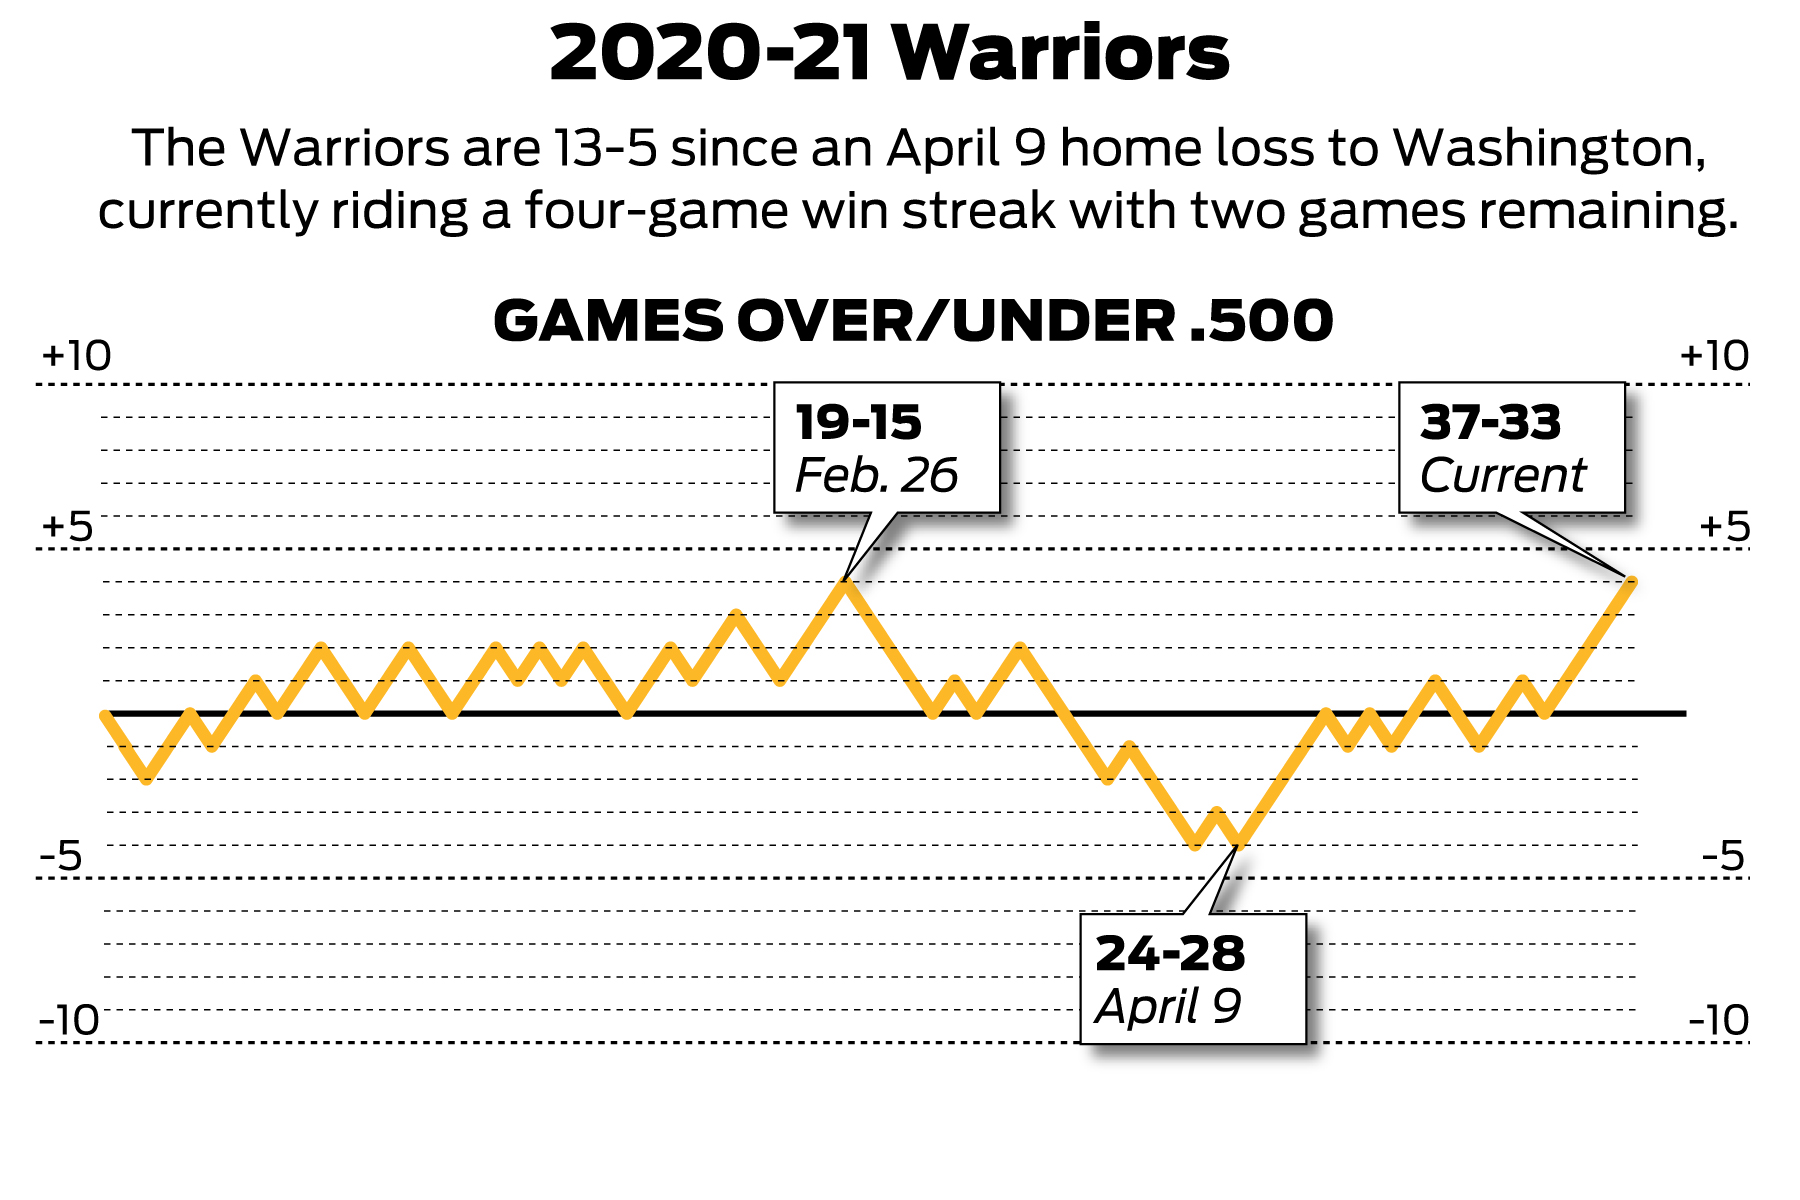 What's most important for Warriors' final two games: seeding, peaking or well-being?